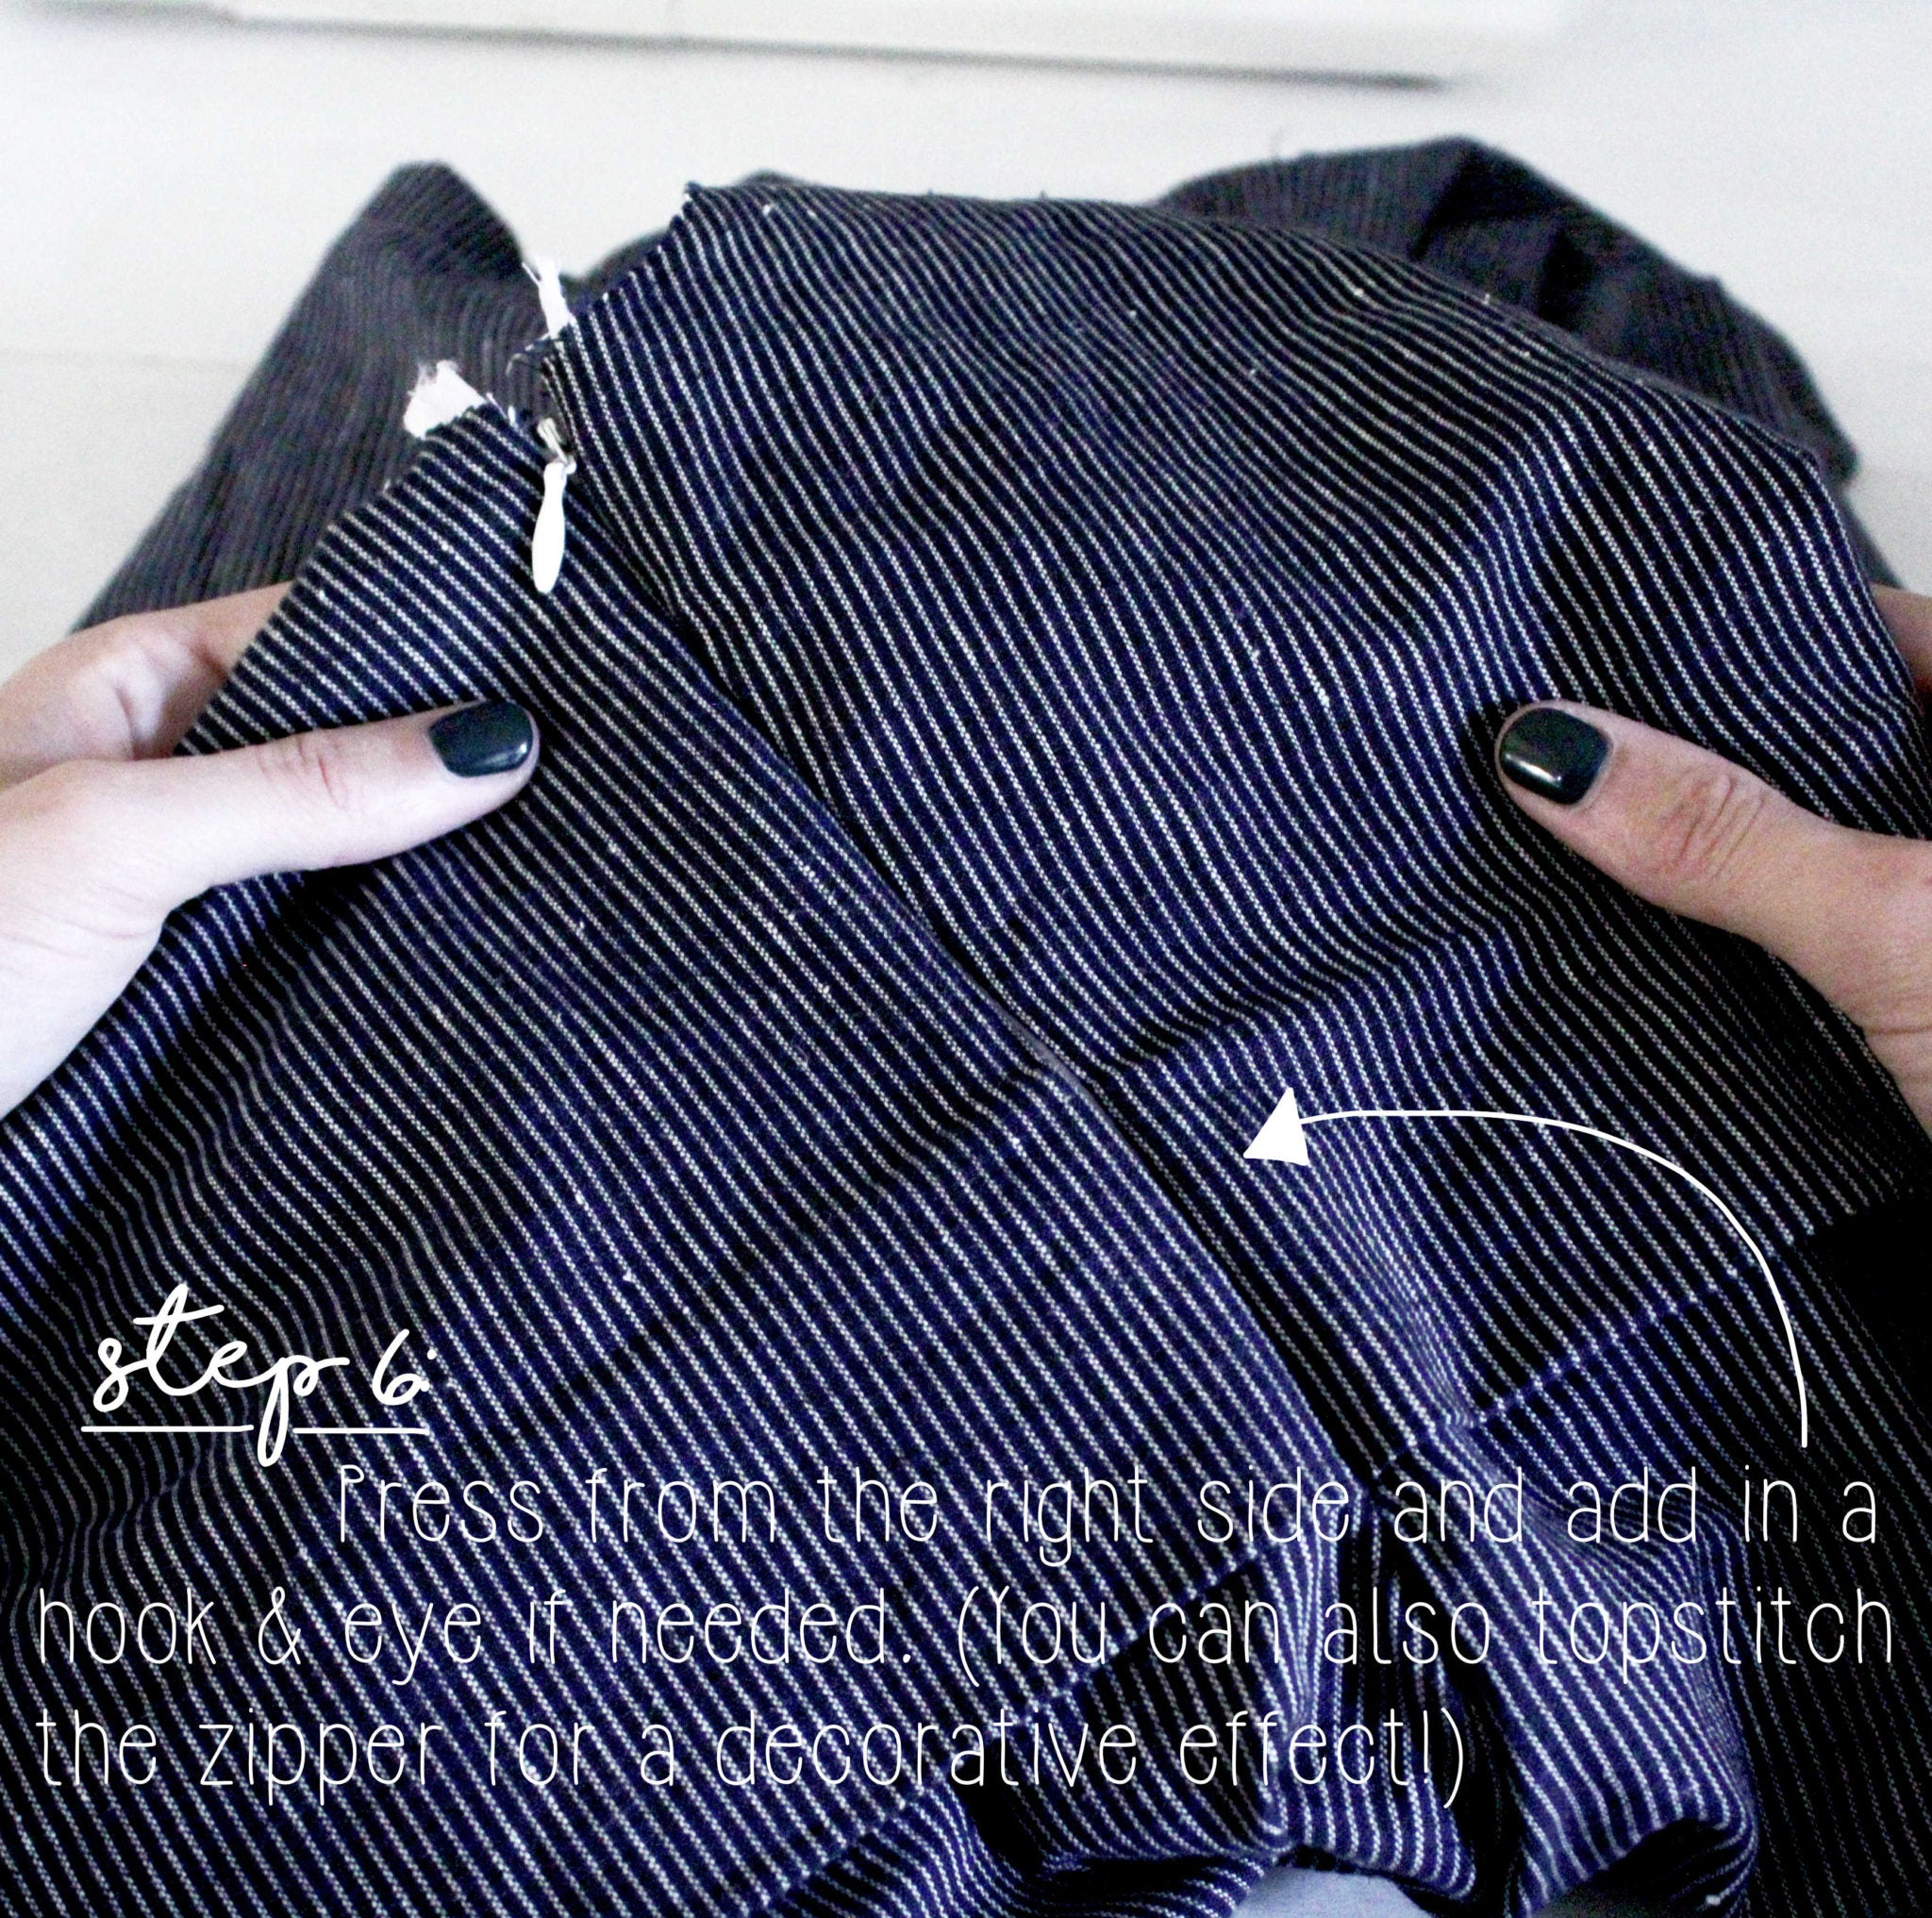 How To Sew An Invisible Zipper Sewing Tutorial: Step 6